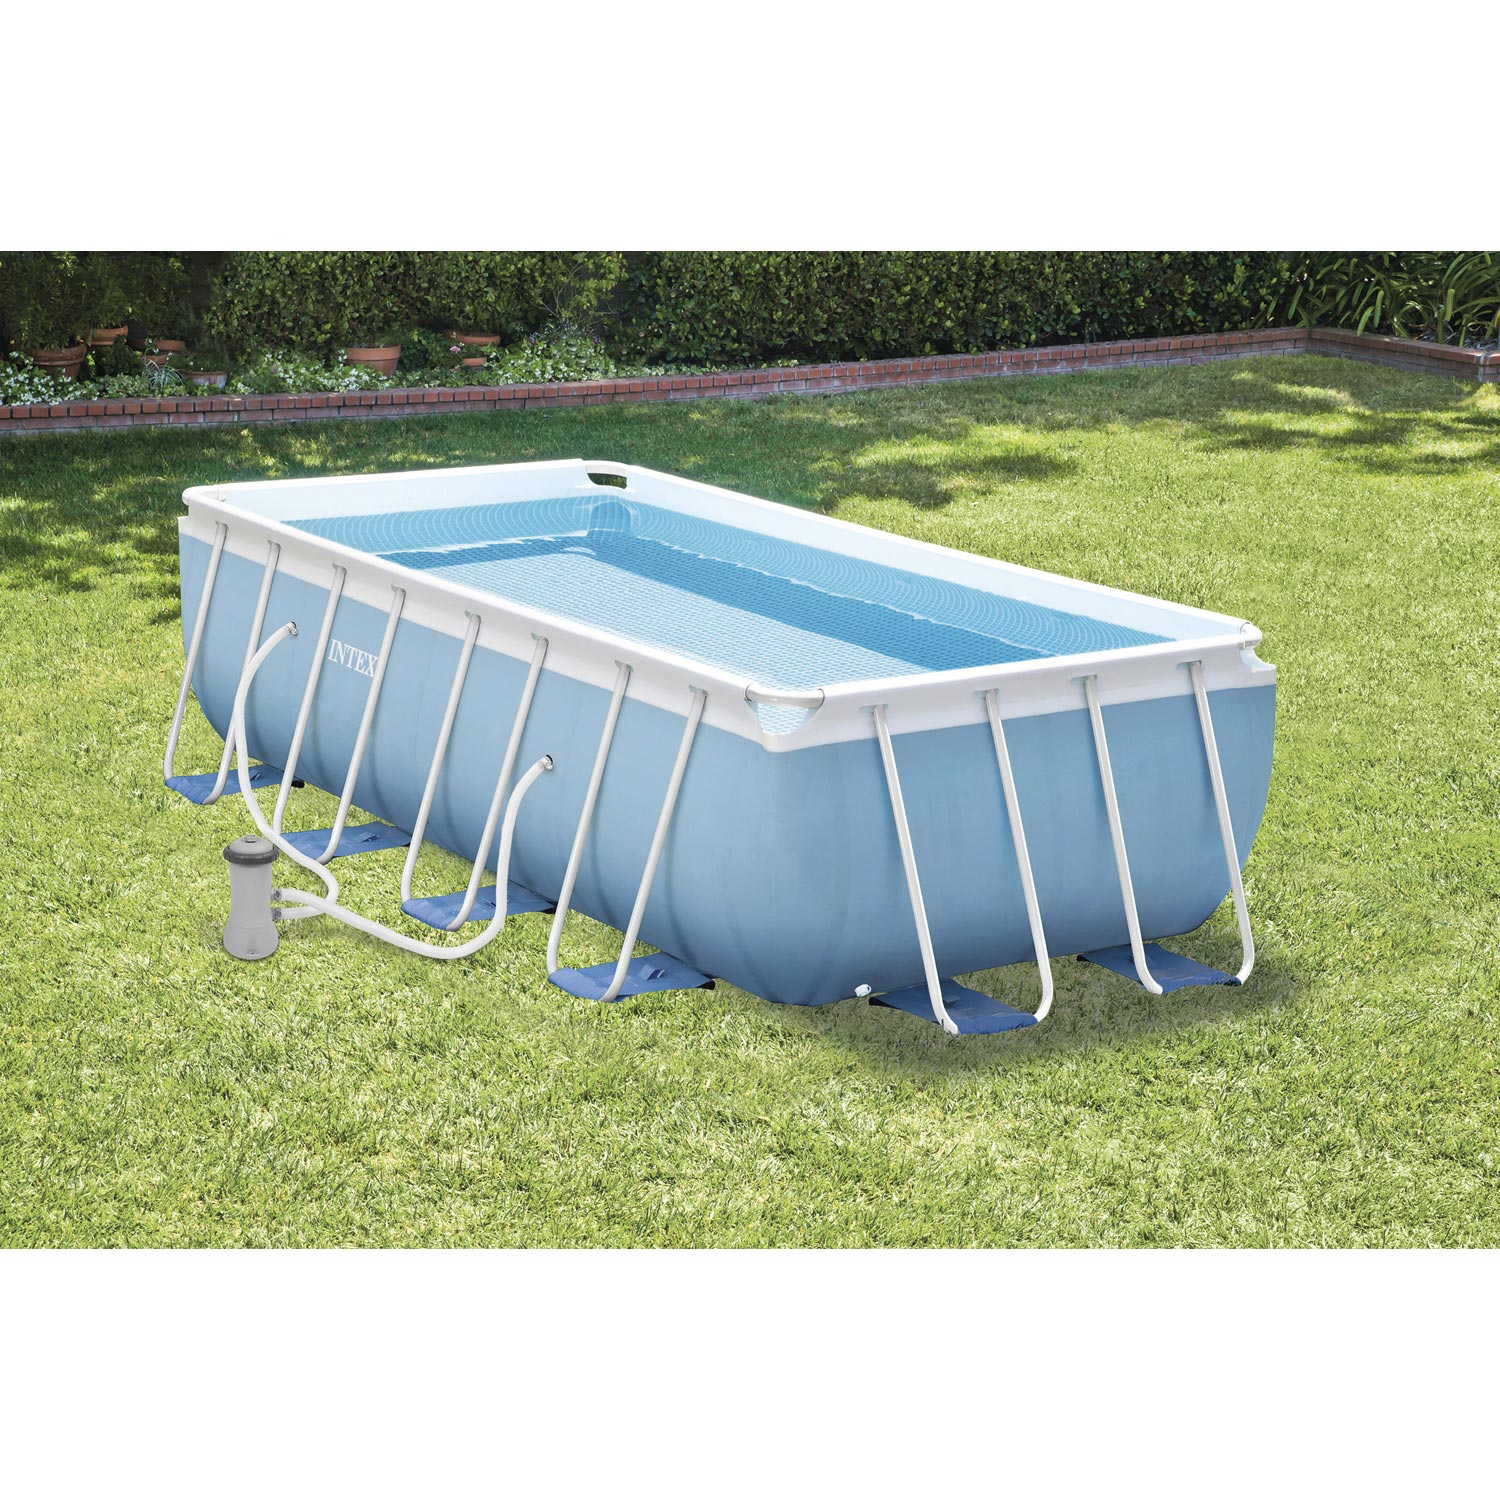 Piscine hors sol autoportante tubulaire prism frame intex for Piscine aure sol